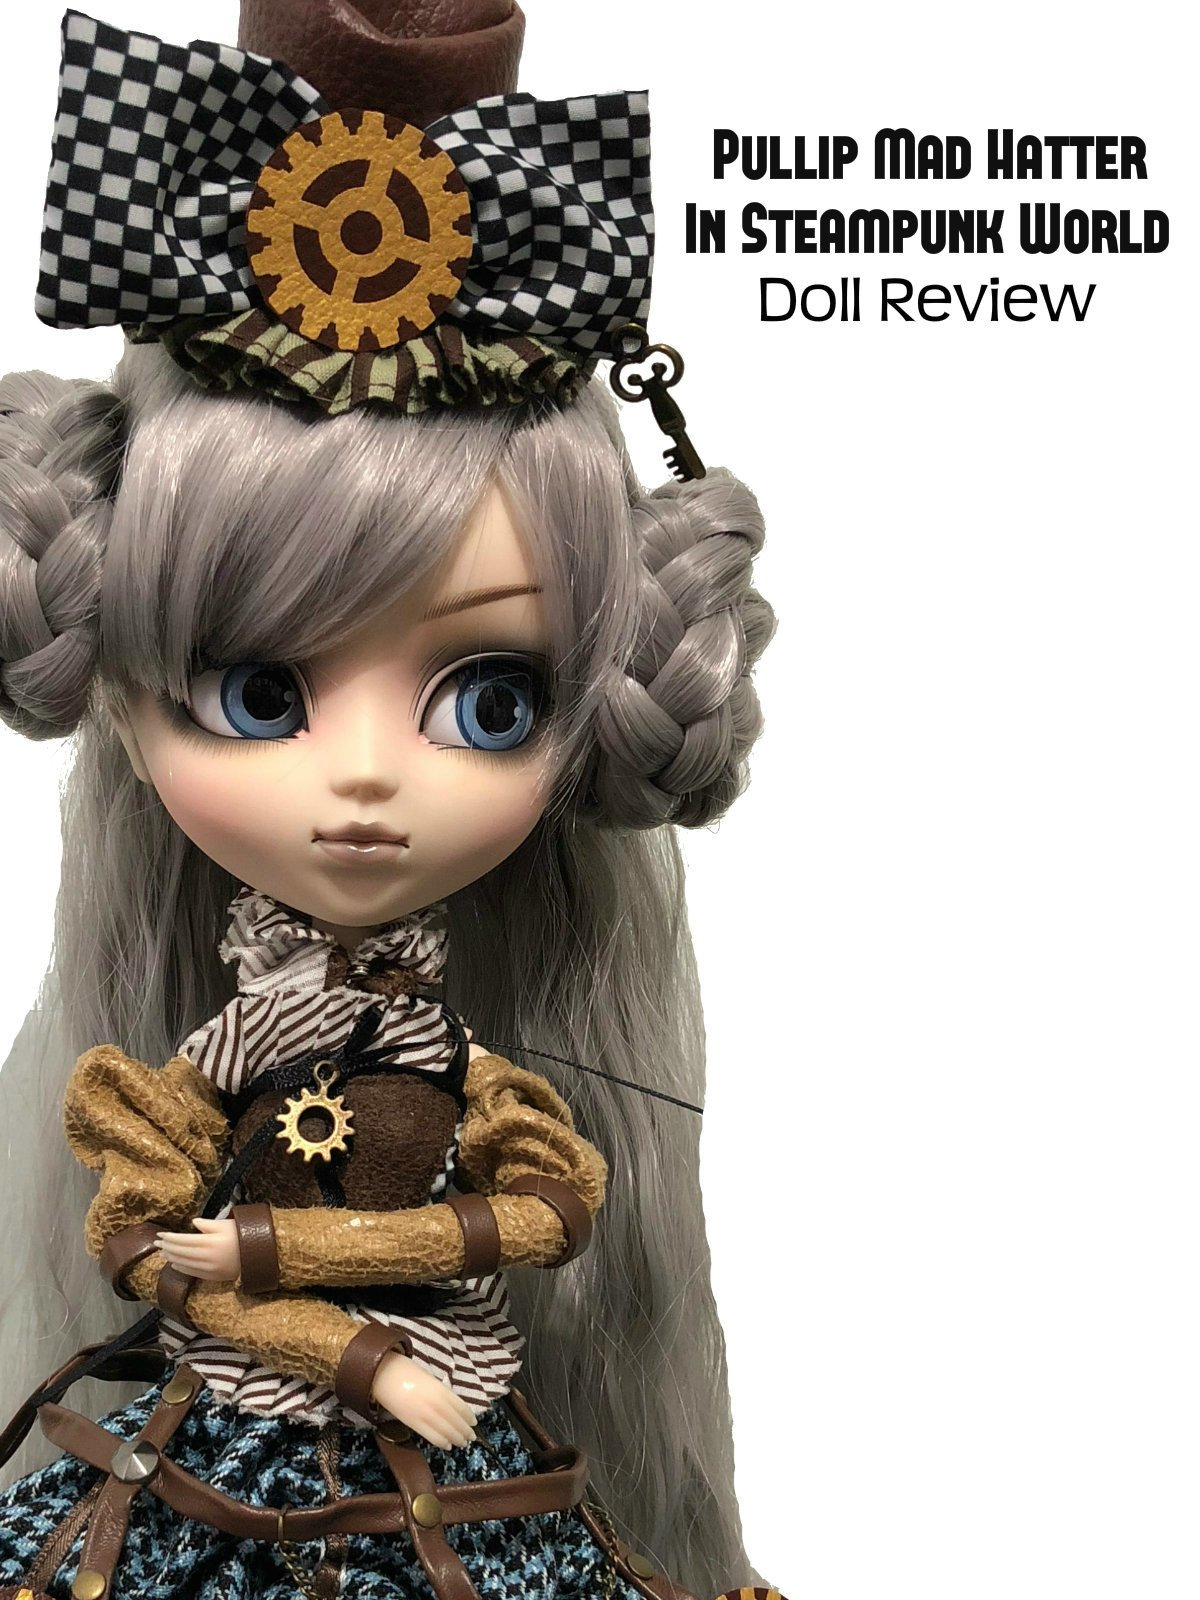 Review: Pullip Mad Hatter In Steampunk World Doll Review